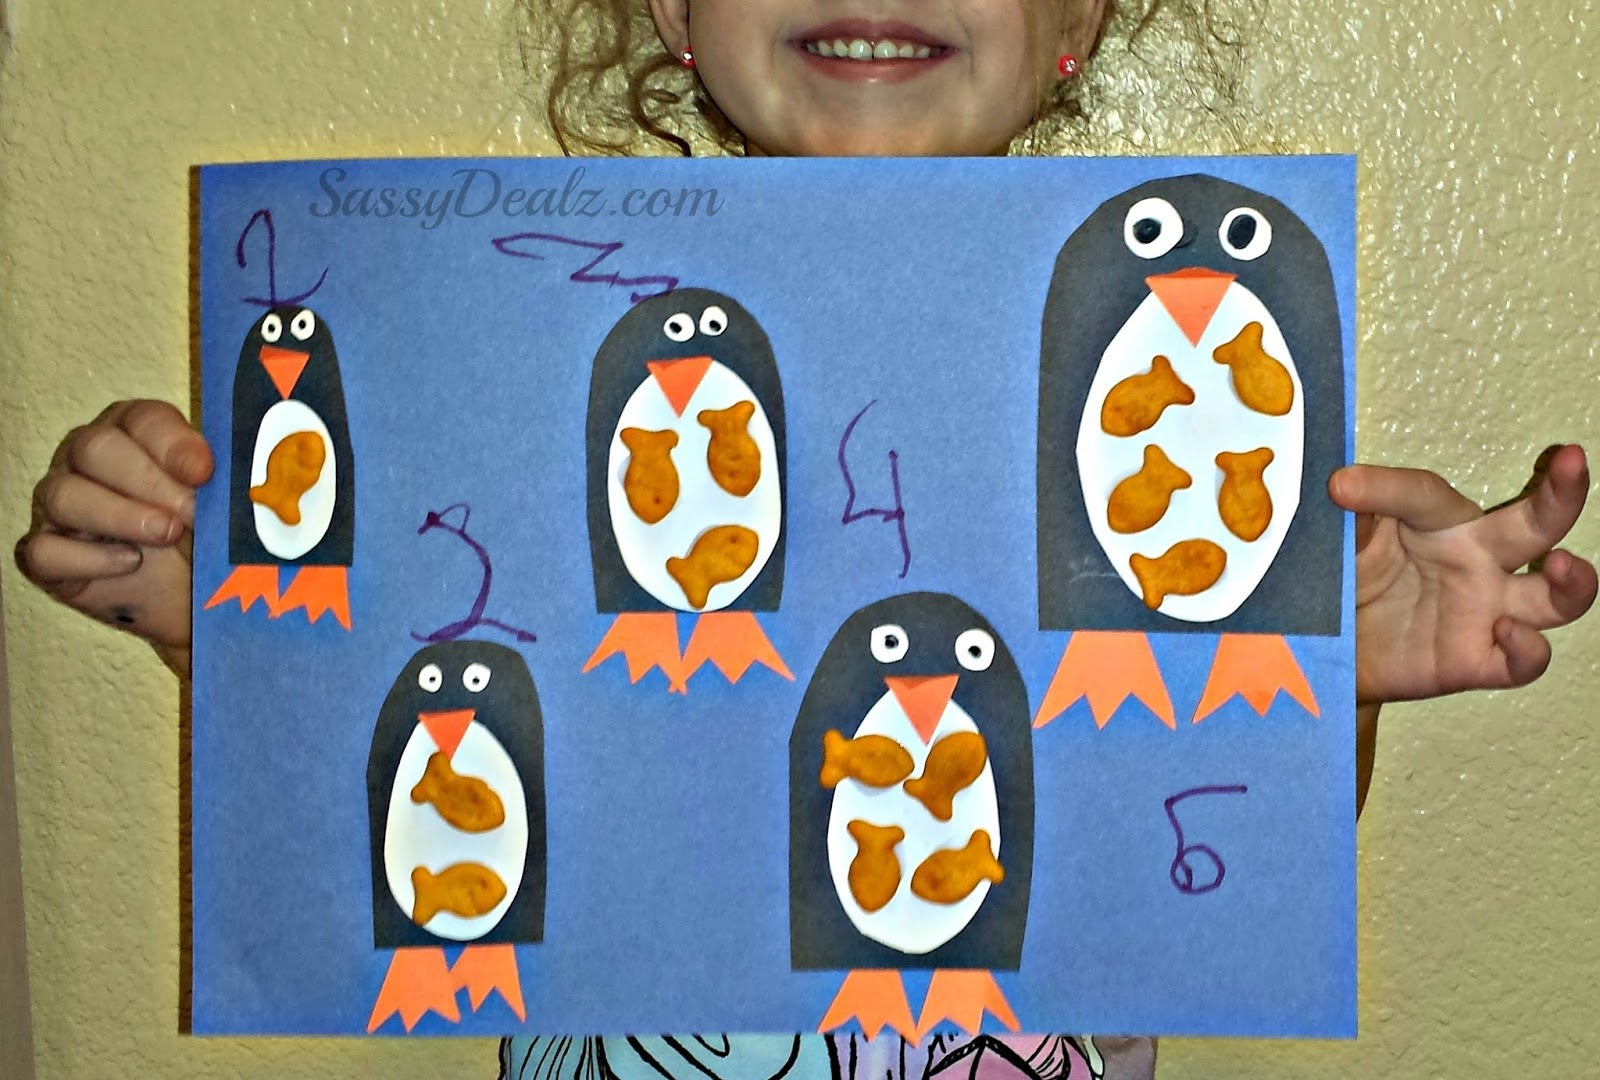 Penguin goldfish cracker counting to 5 activity amp craft for kids